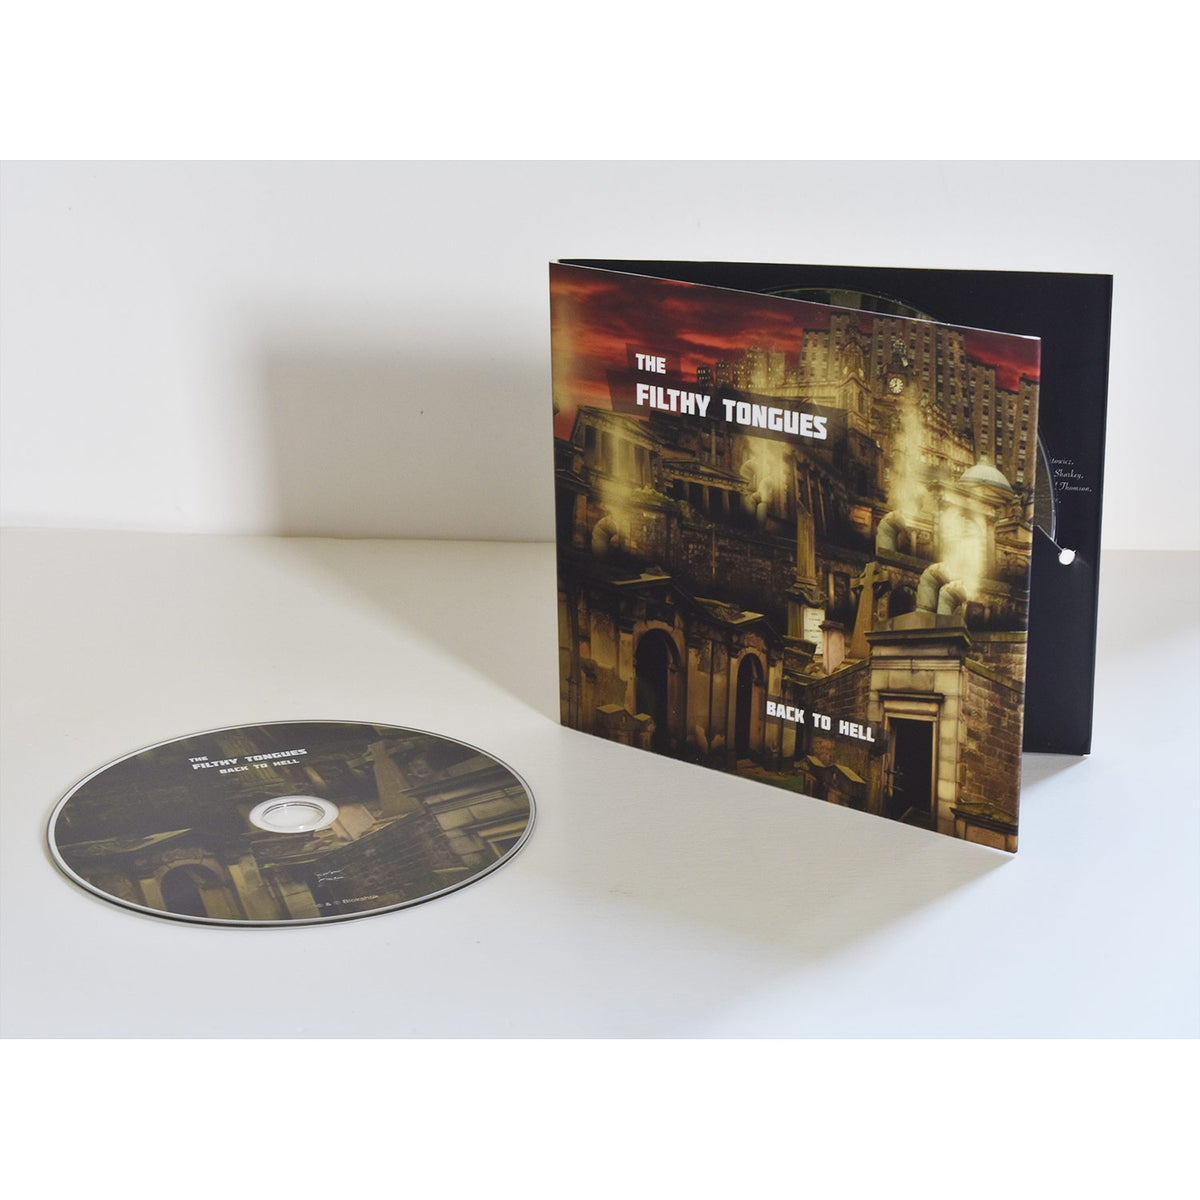 Image of The Filthy Tongues - Back to Hell (CD)